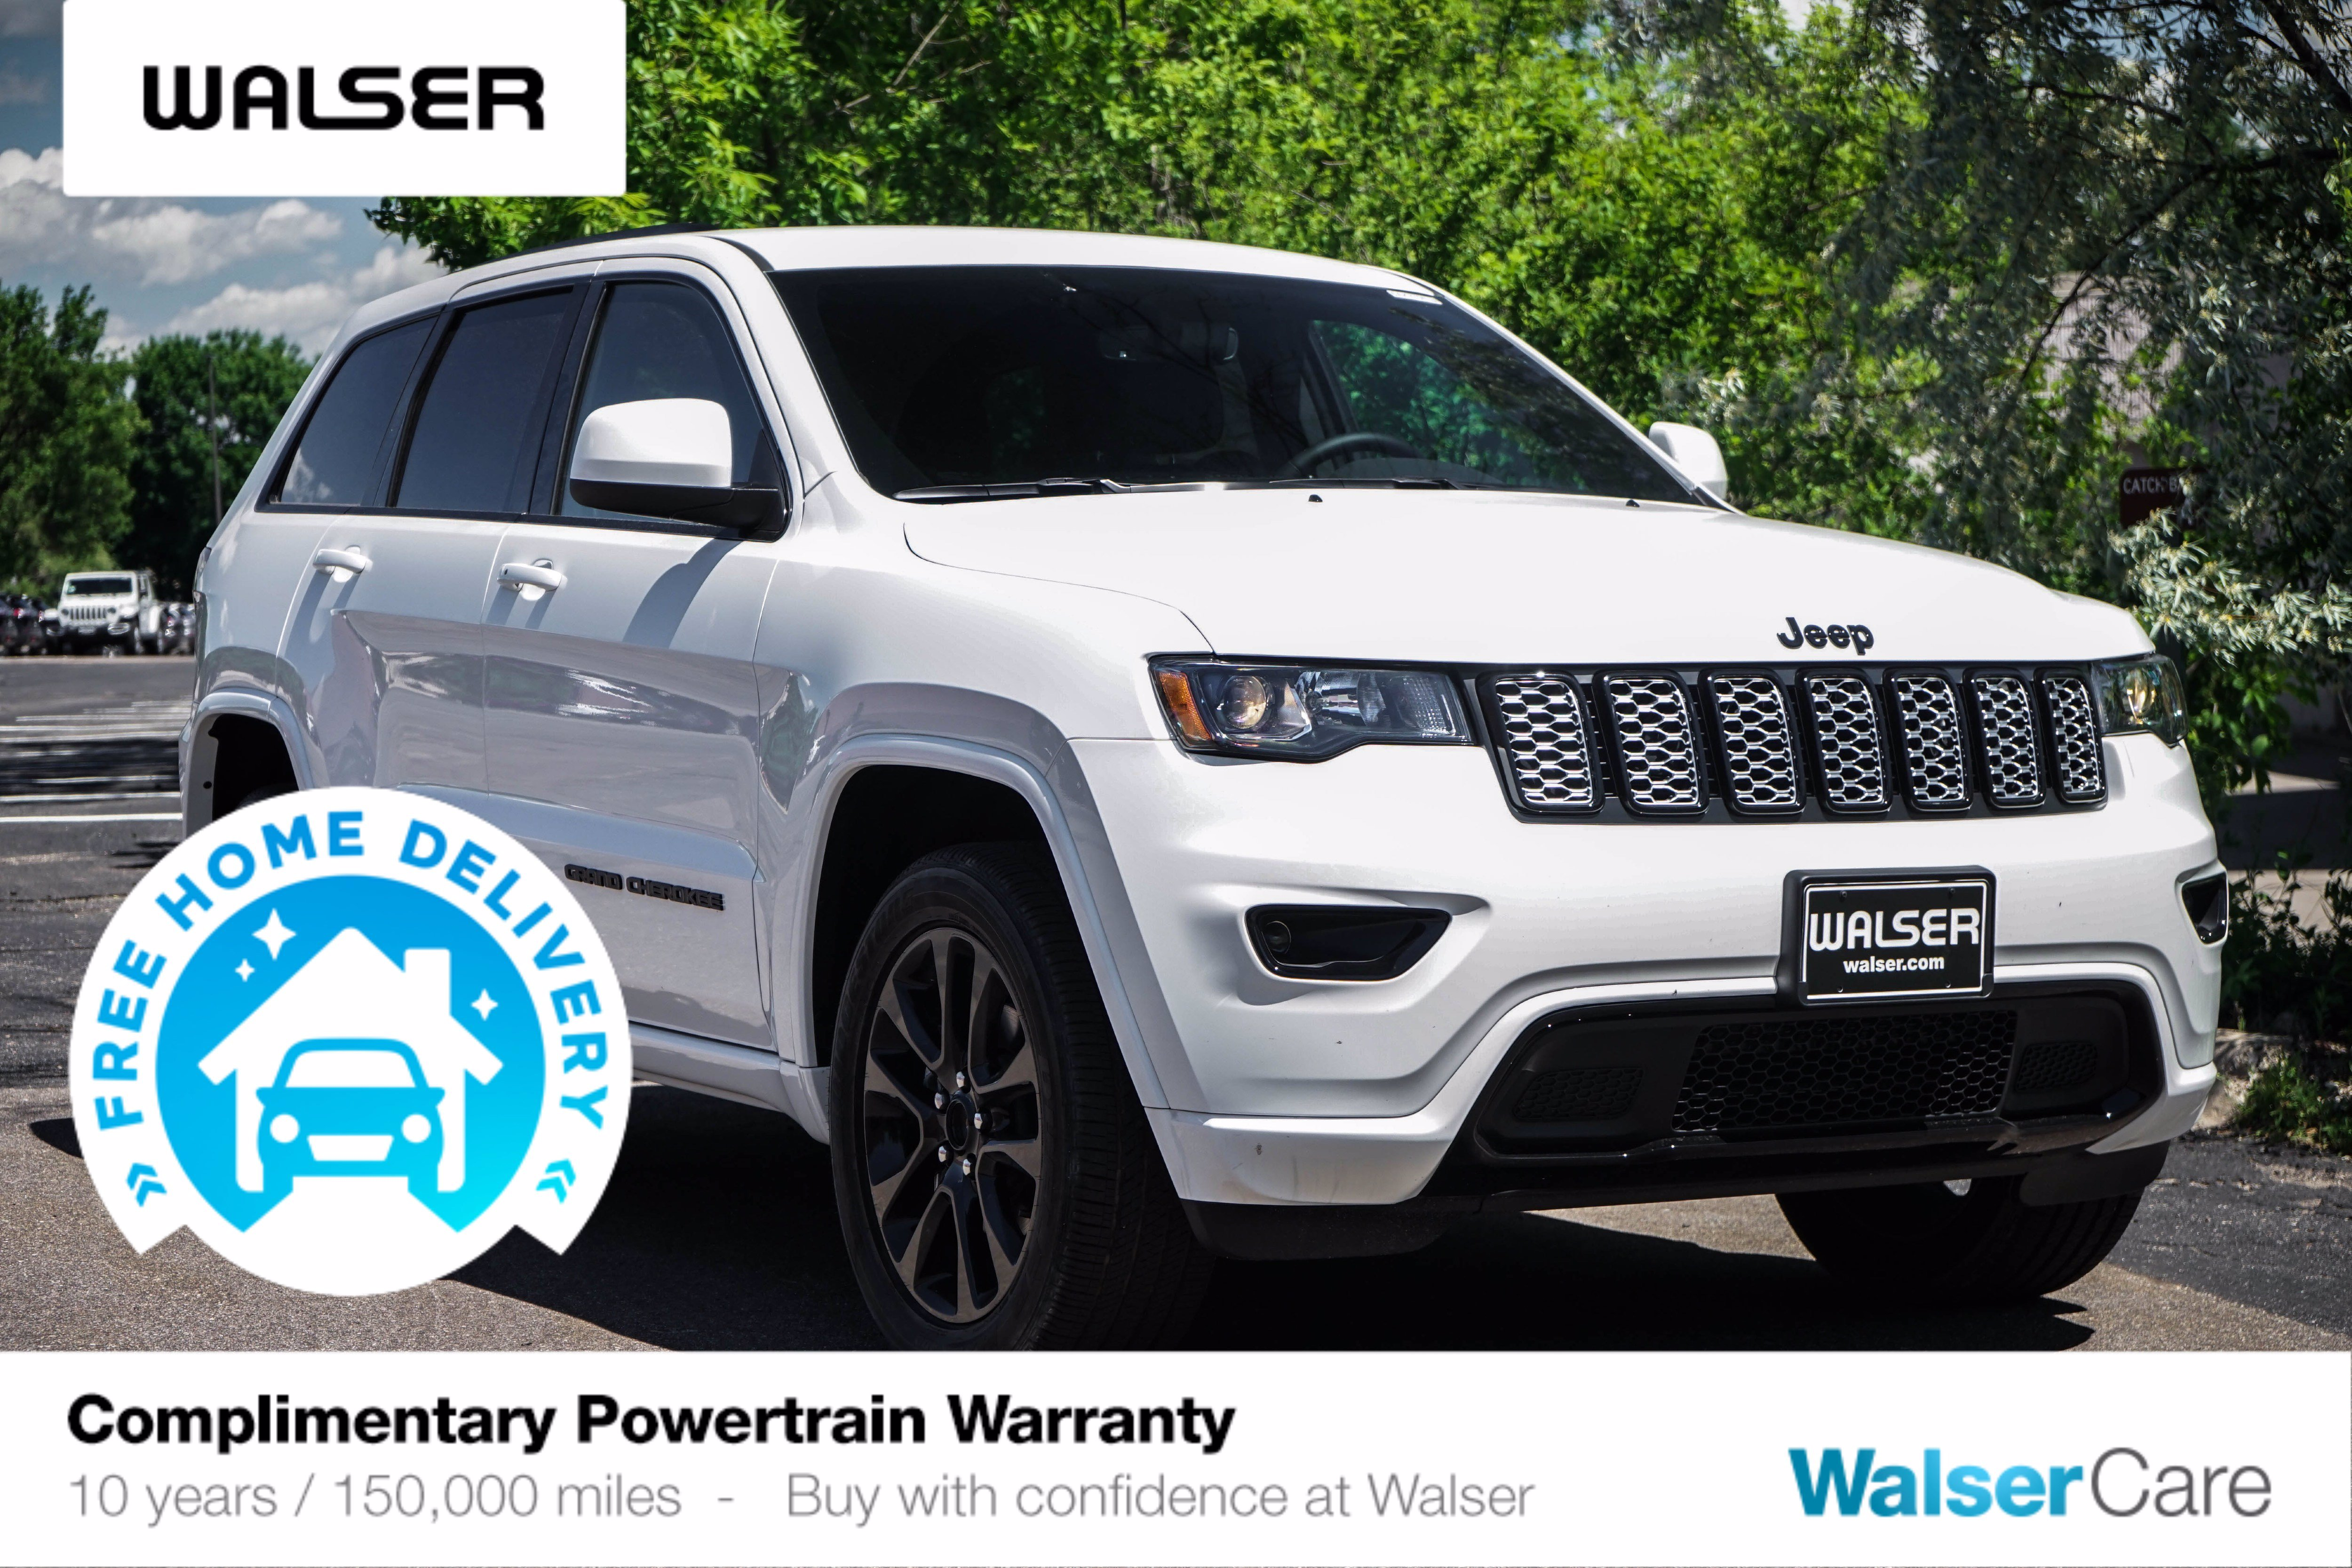 New 2020 JEEP Grand Cherokee 2020 JEEP GRAND CHEROKEE LAREDO 4DR SUV 114.8 WB 4WD